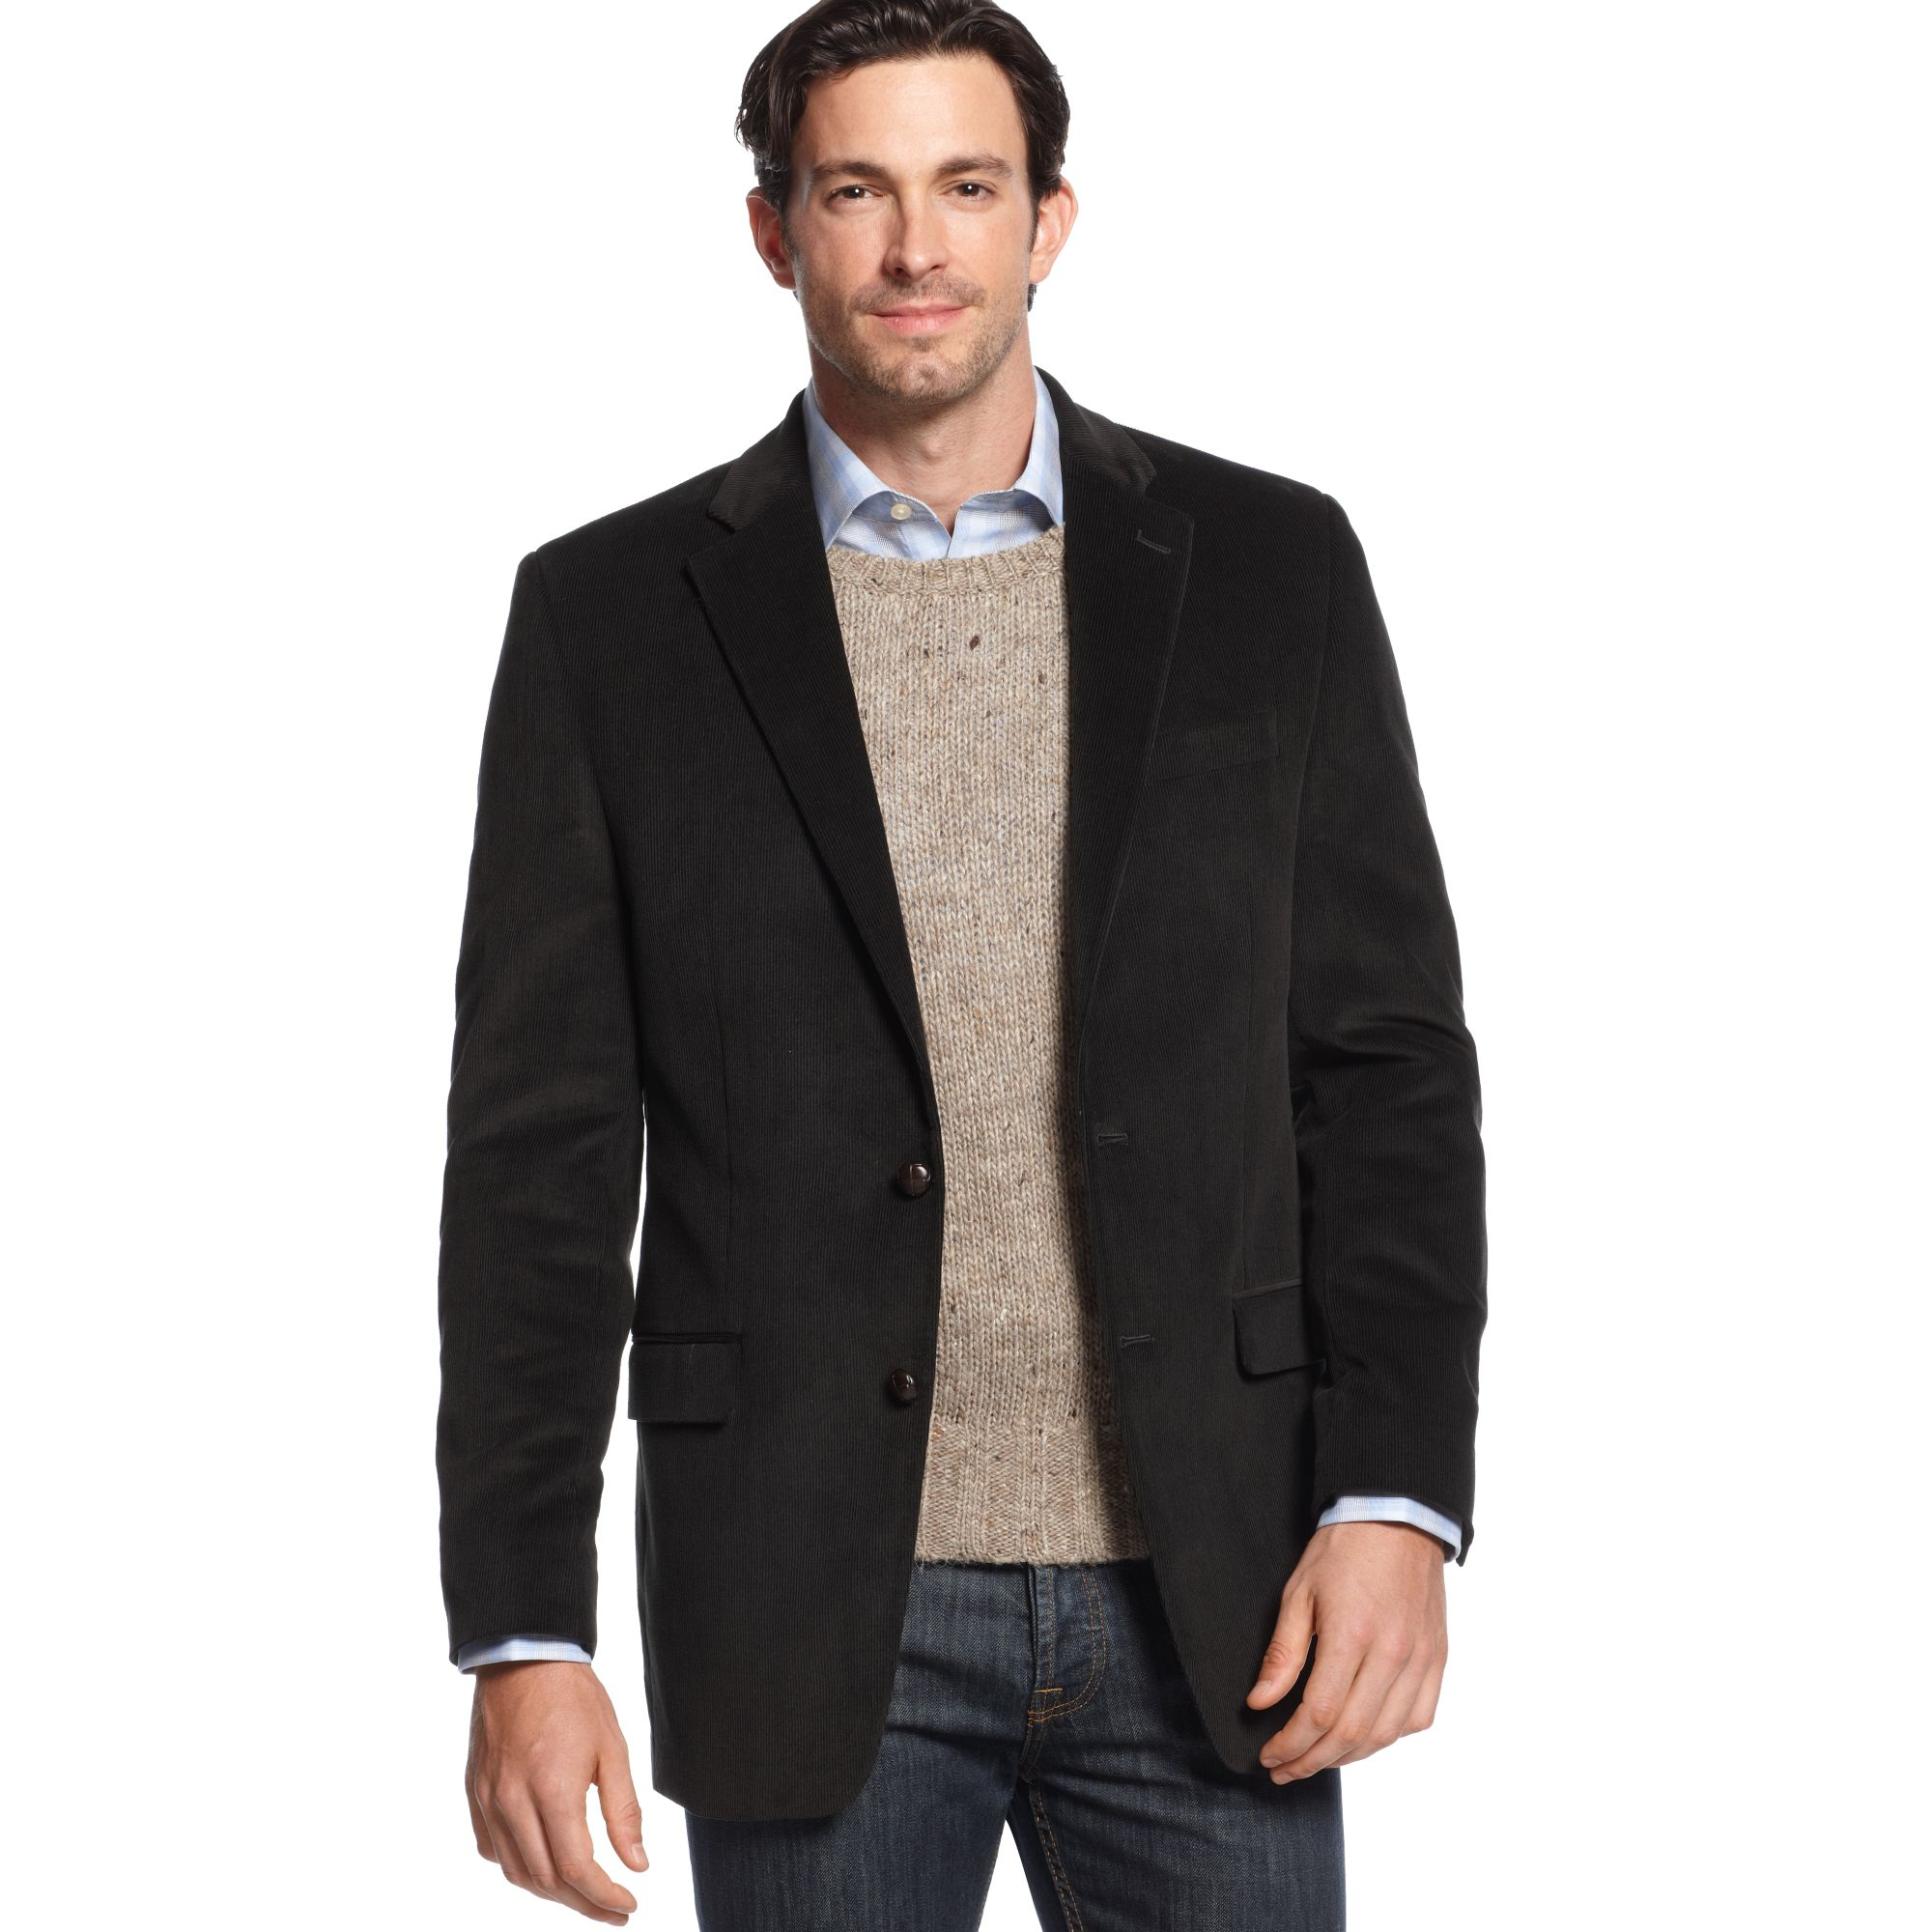 today Mens Blazer Slim UK Black Corduroy Jacket Long Sleeve Fit T4xZPnTOg SI-UK works with international students to select the perfect UK university and course for them. We review academic backgrounds and career goals and provide you with a list of recommended universities.